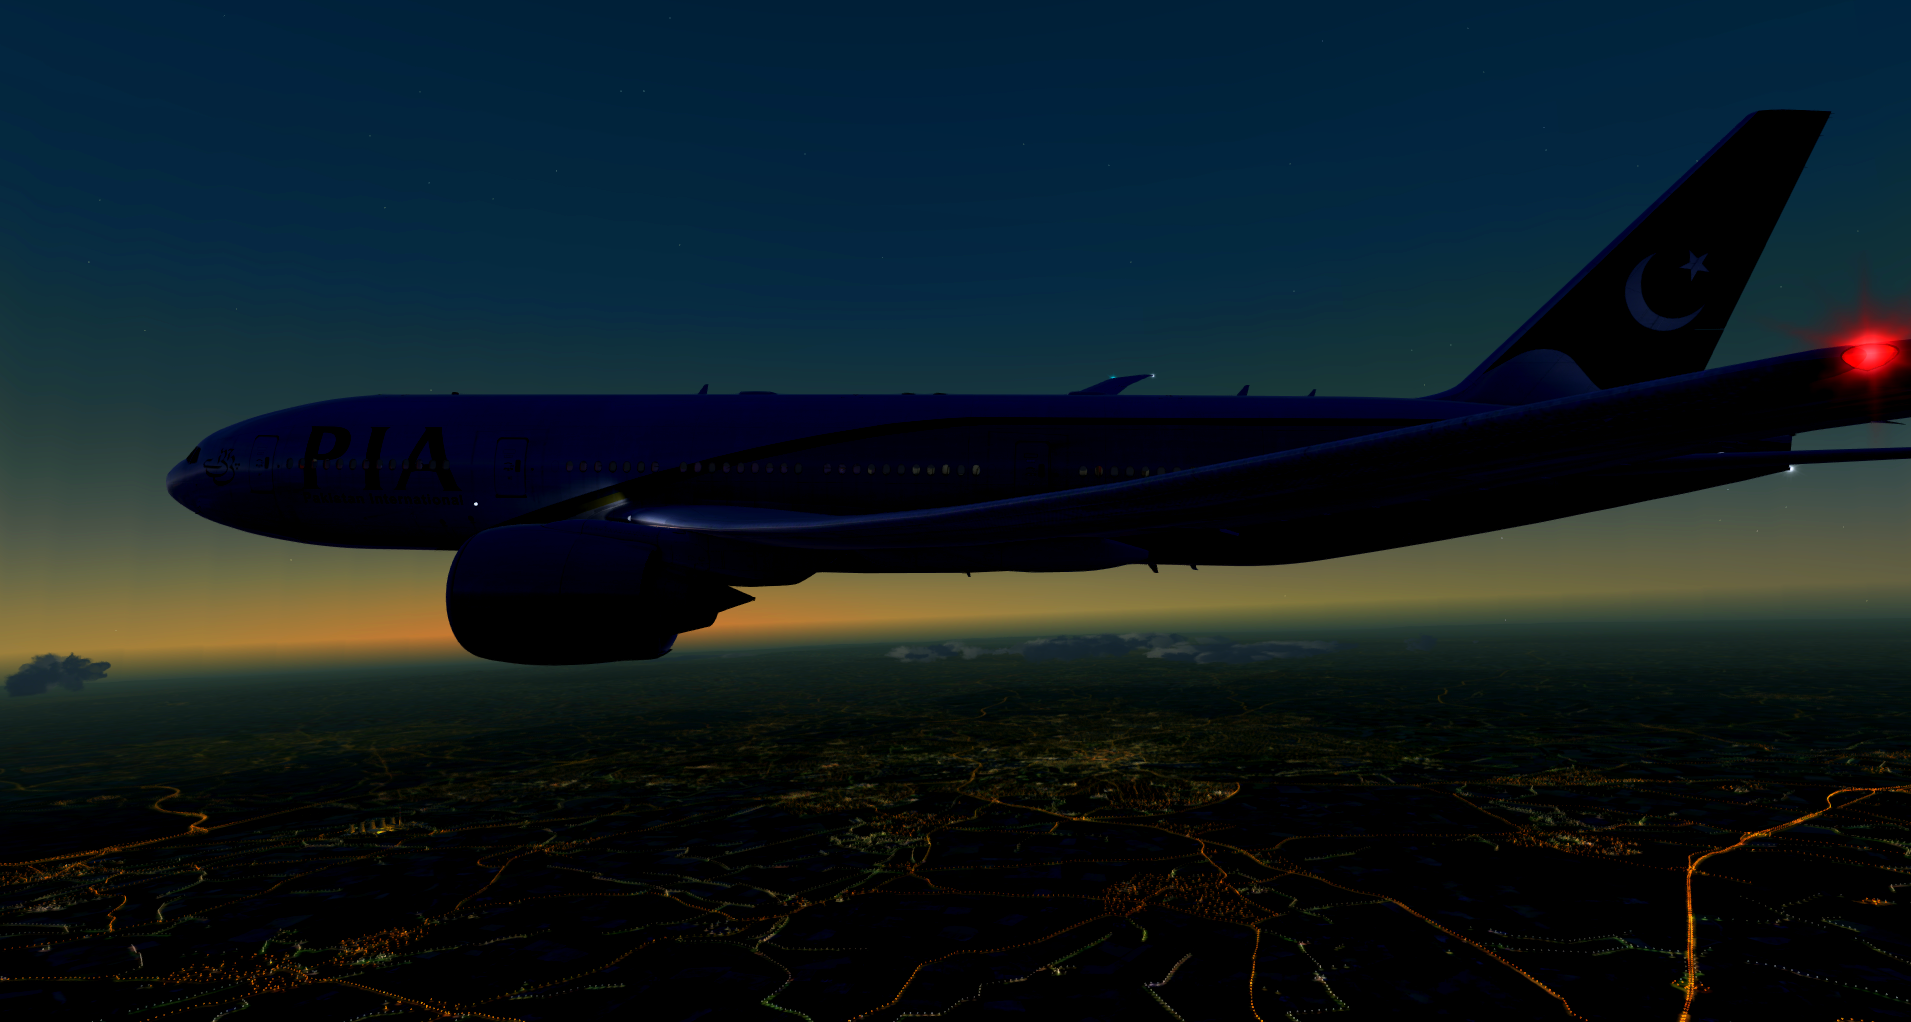 fsx%202014-05-15%2011-12-56-180.png